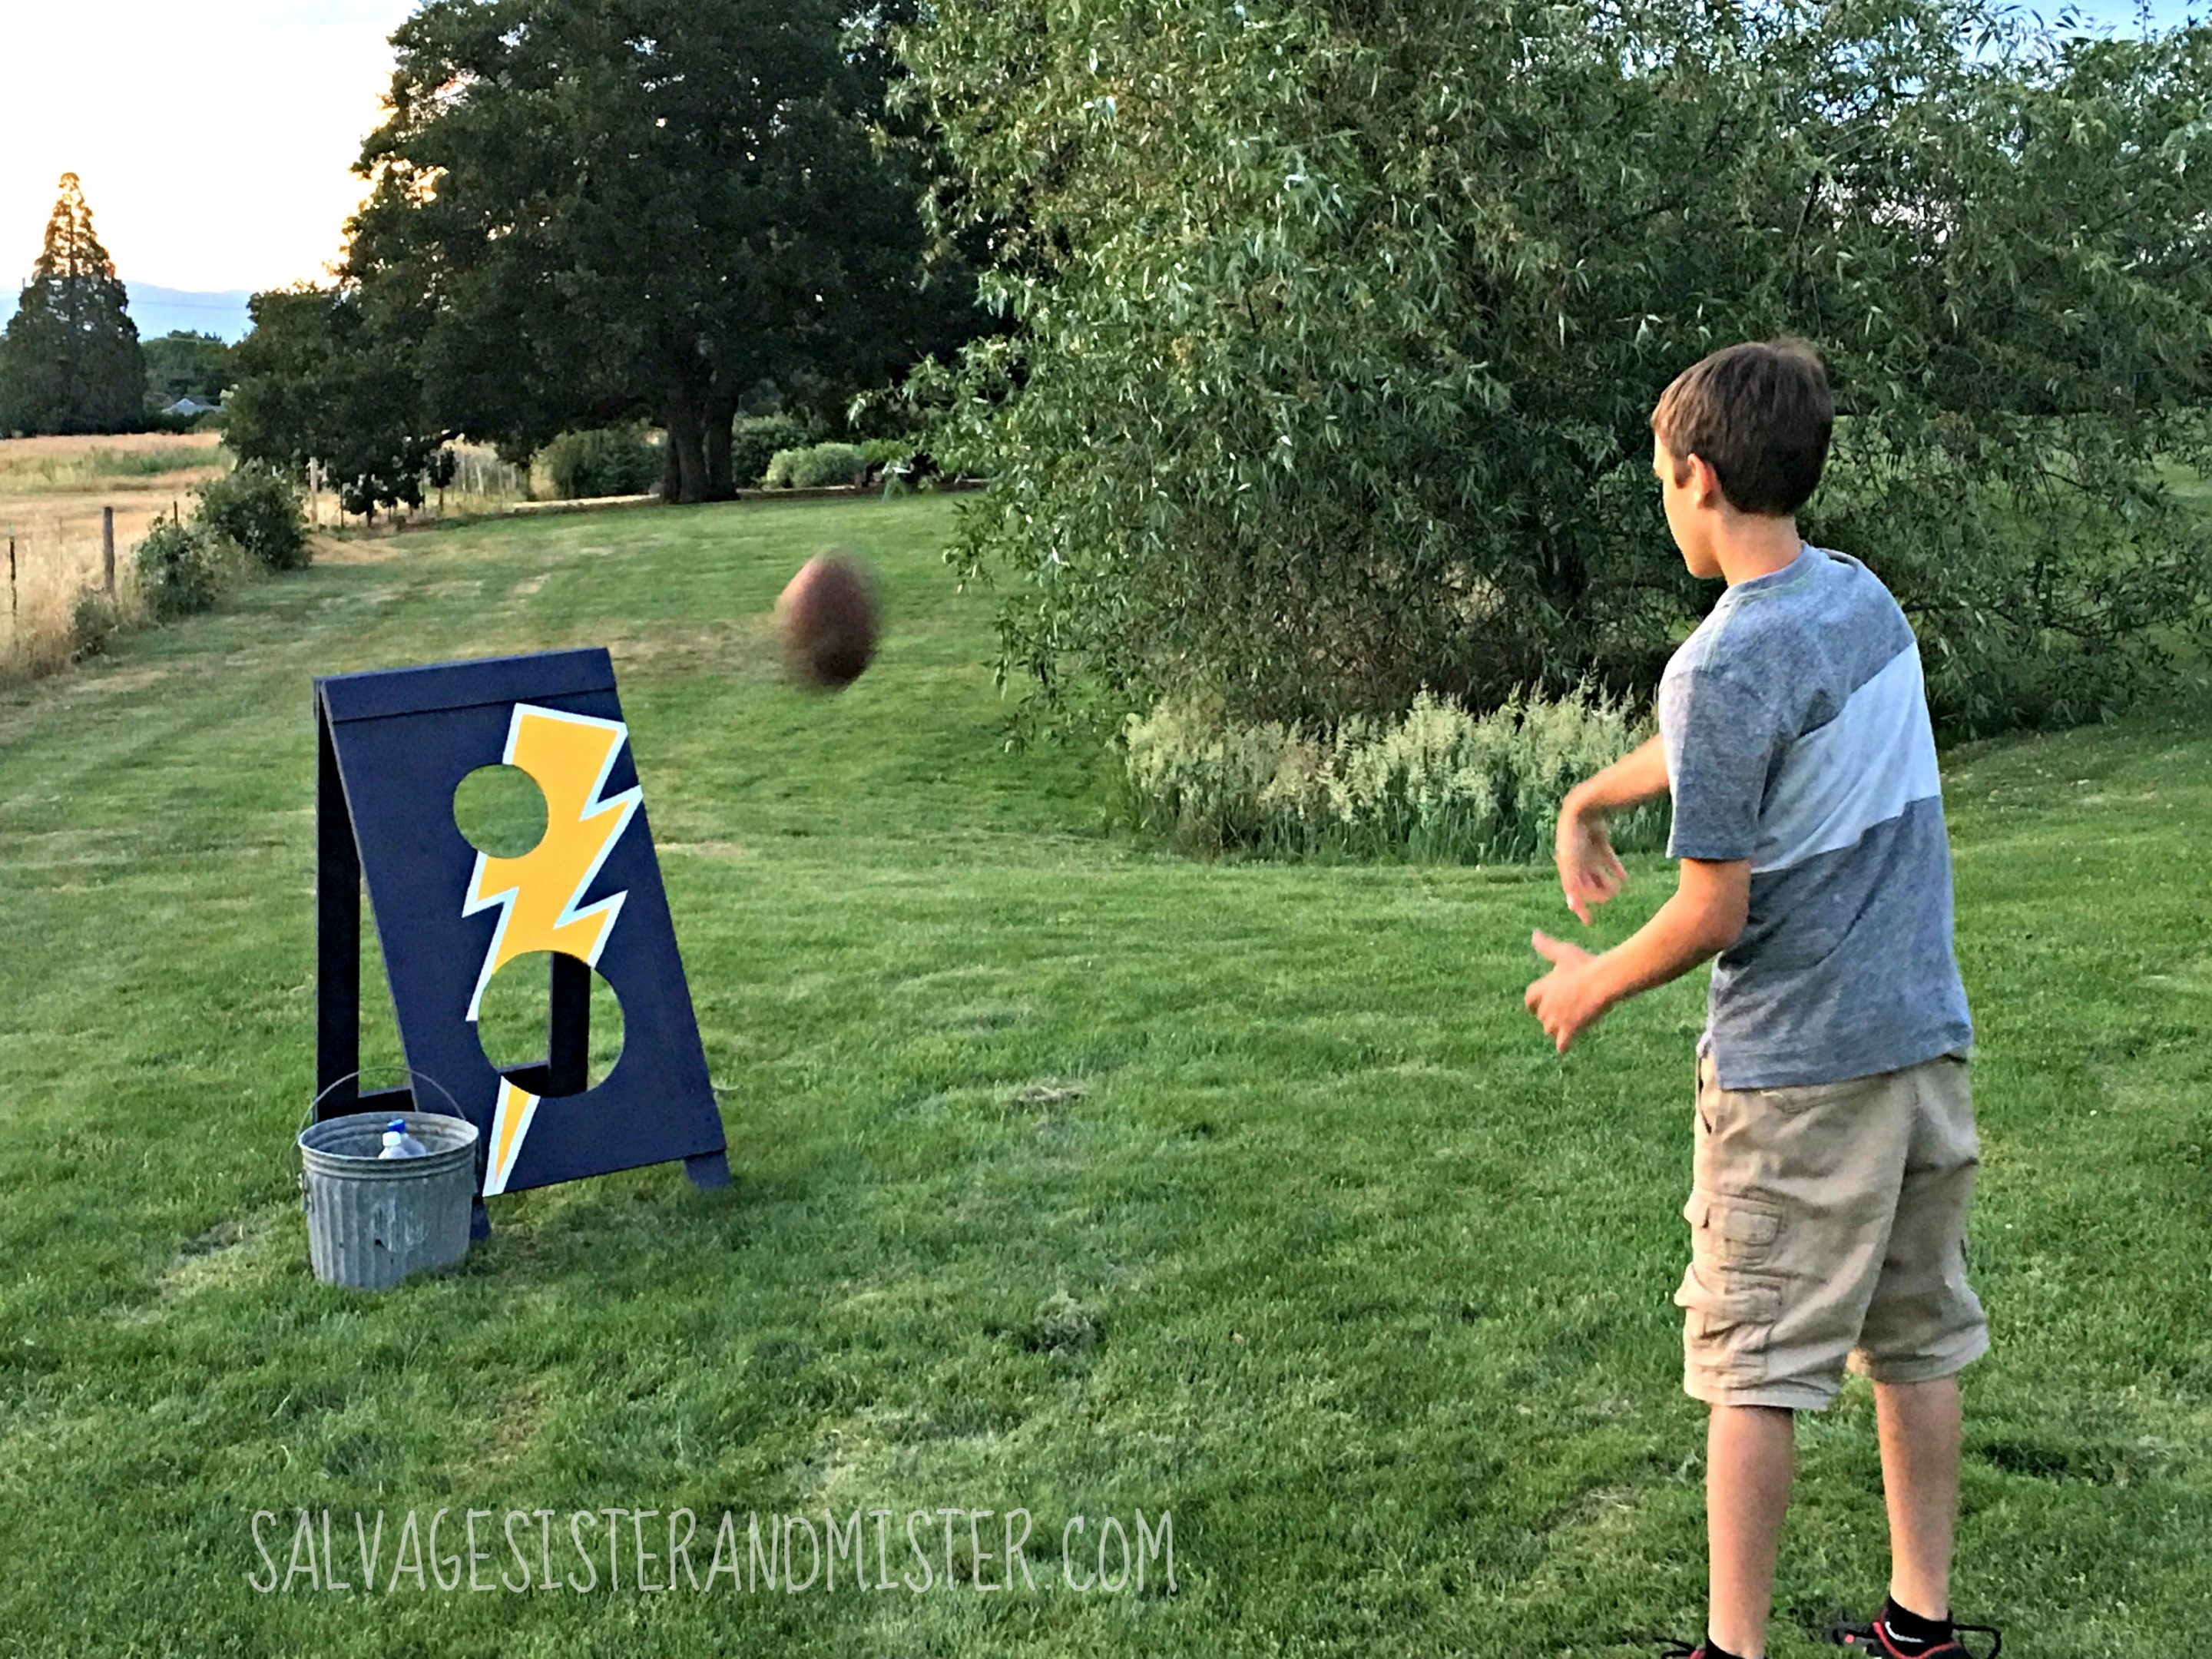 Fun family time with this Father's Day Football Toss from The Home Depot DIY Workshop. REgister to make this and/or amny other projects for free. Whether you want to learn to build, make something, or have a fun project the kids can build Home Depot has wonderful projects to get you going. #sponsored #DIYWorkshop